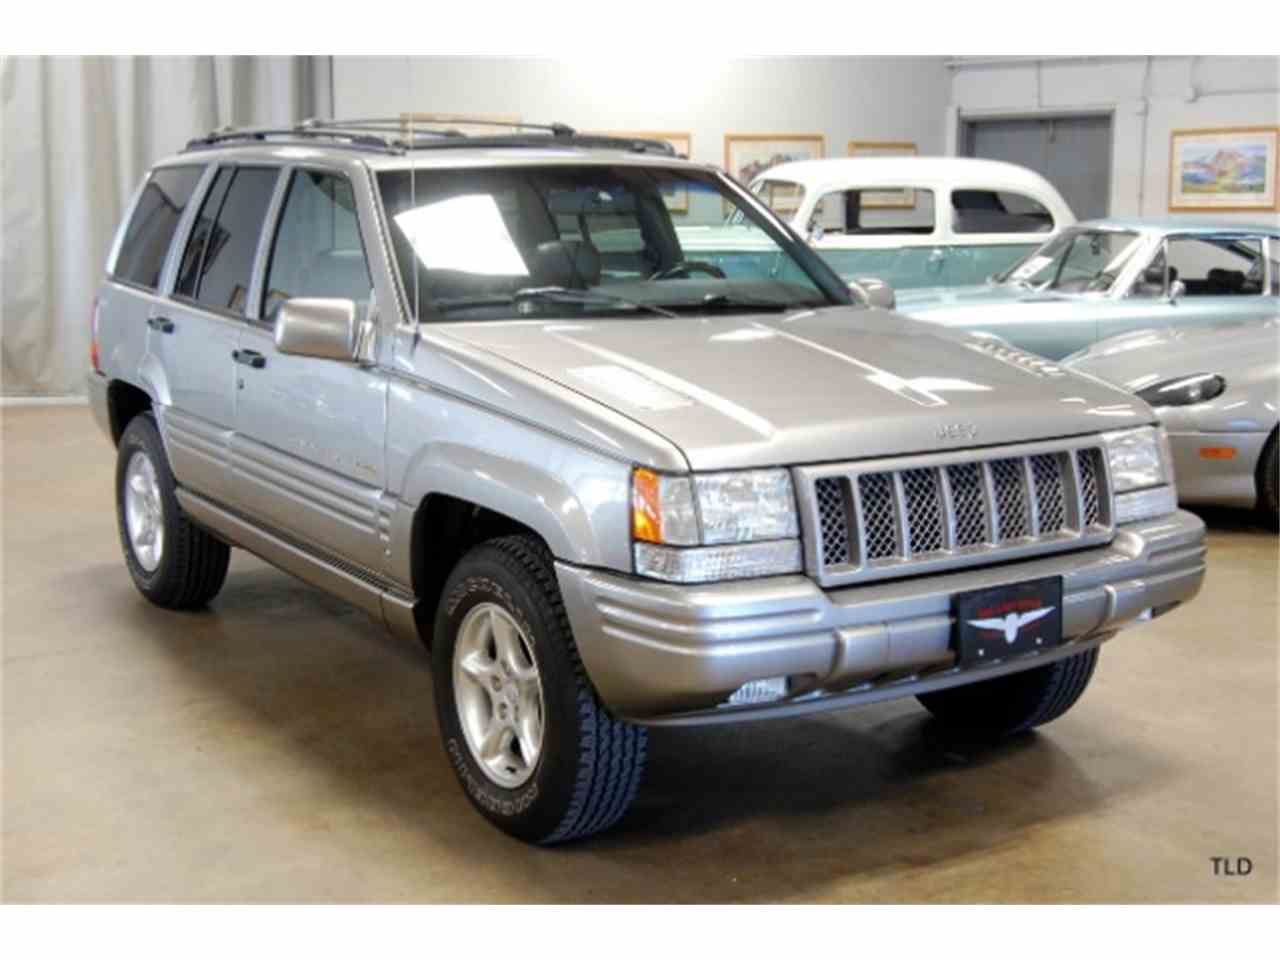 1998 jeep grand cherokee for sale cc. Black Bedroom Furniture Sets. Home Design Ideas